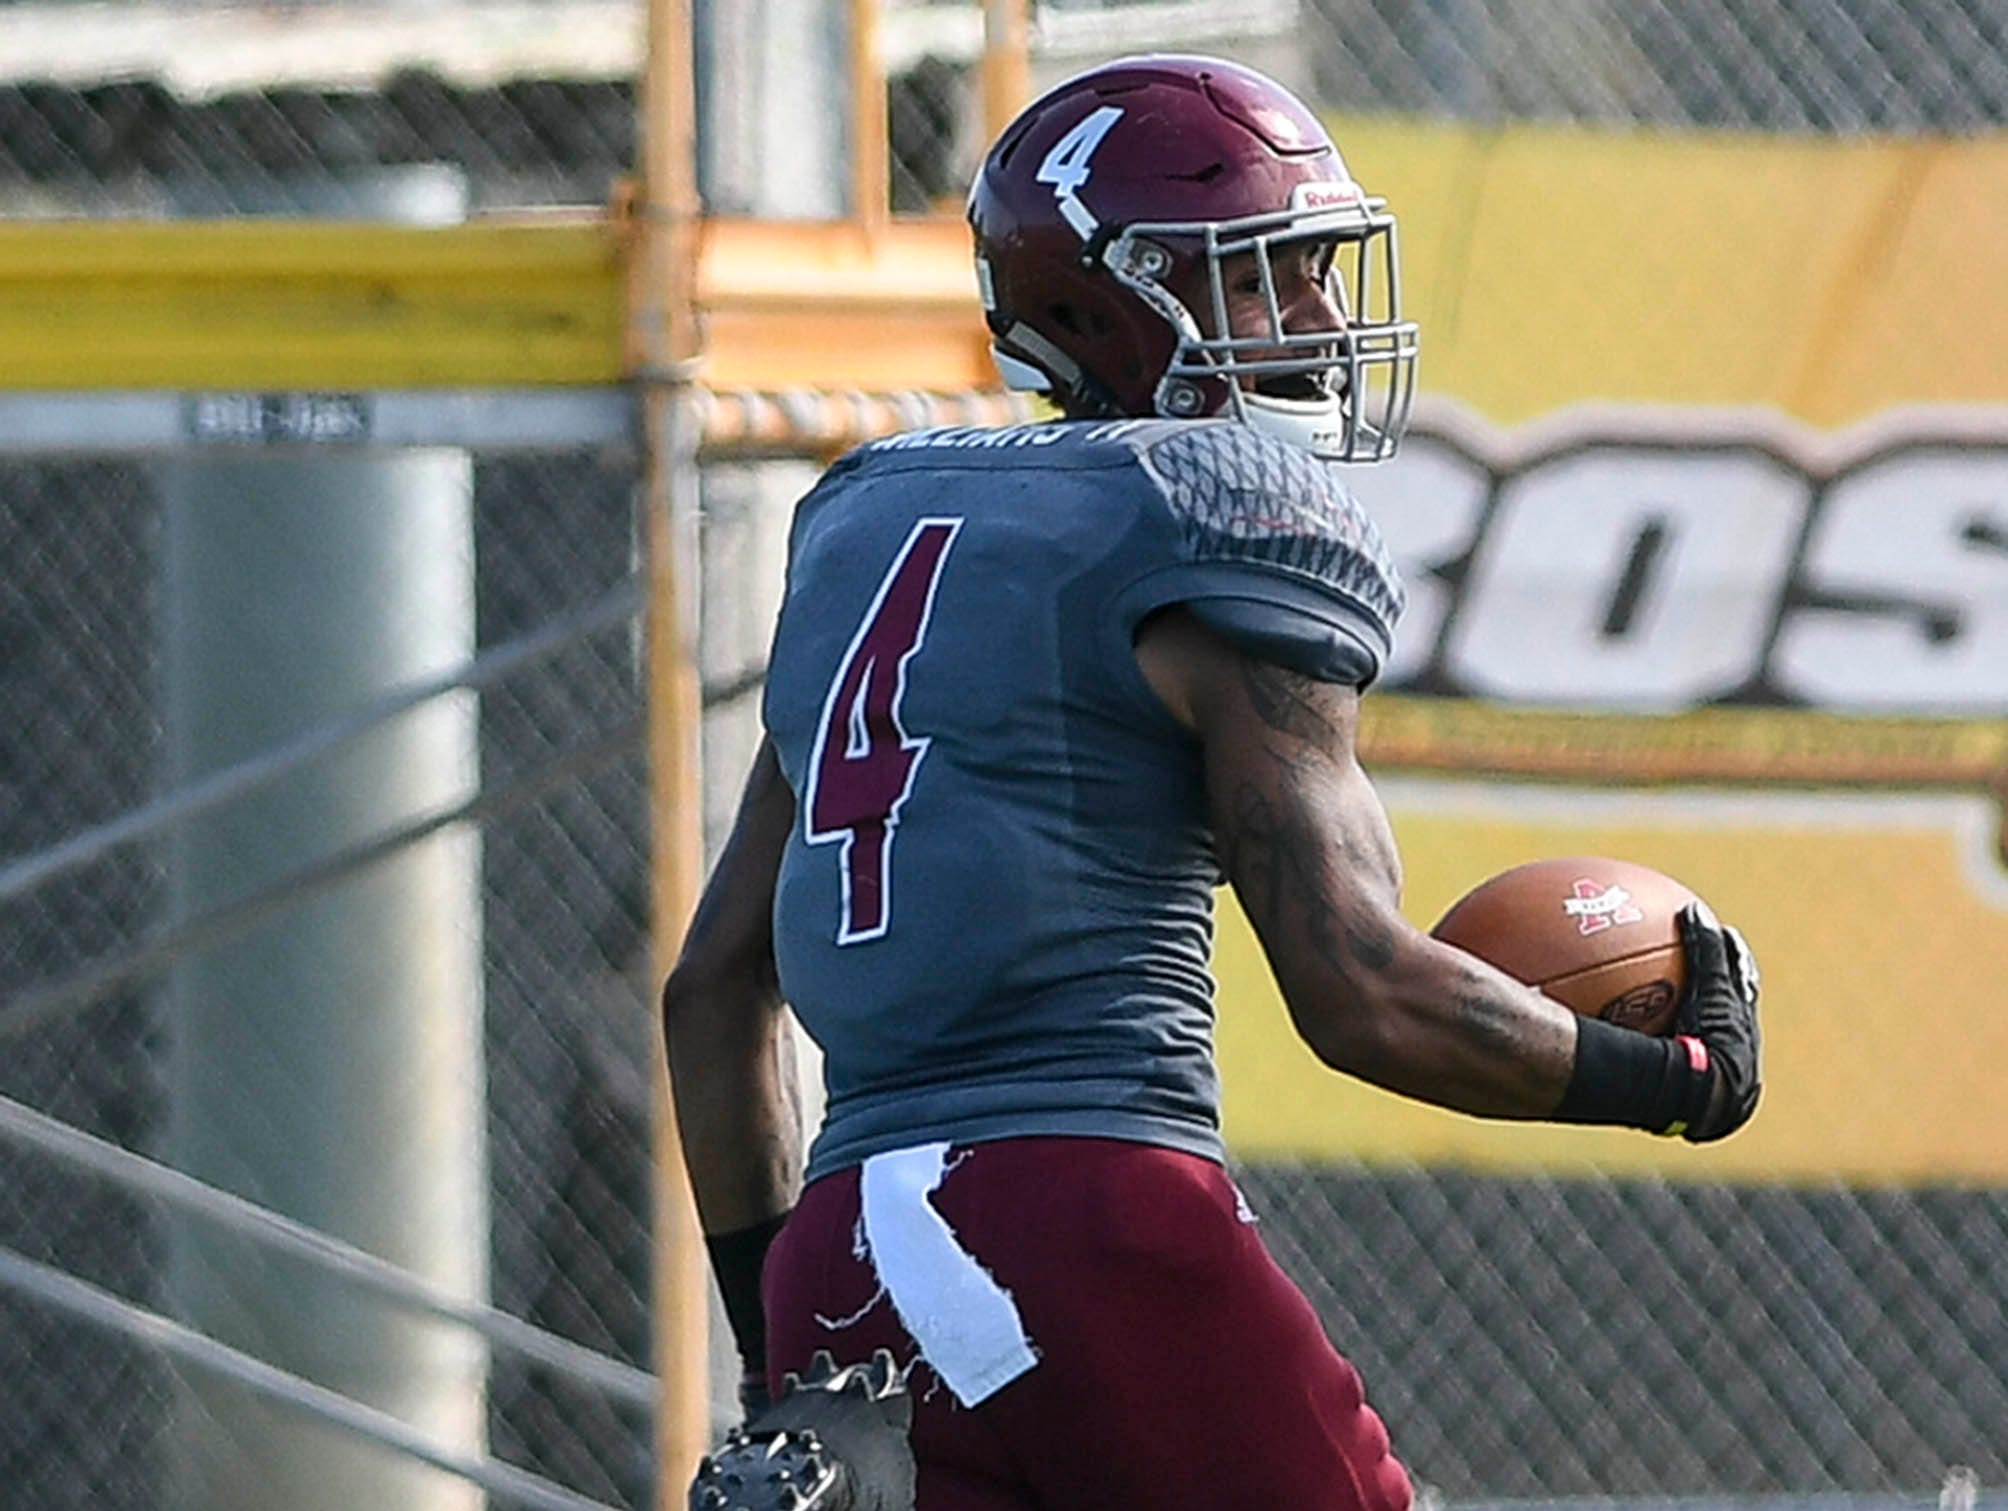 Simon WIlliams of Florida Tech recovers a fumble and takes it to the end zone for a touchdown during Saturday's game.